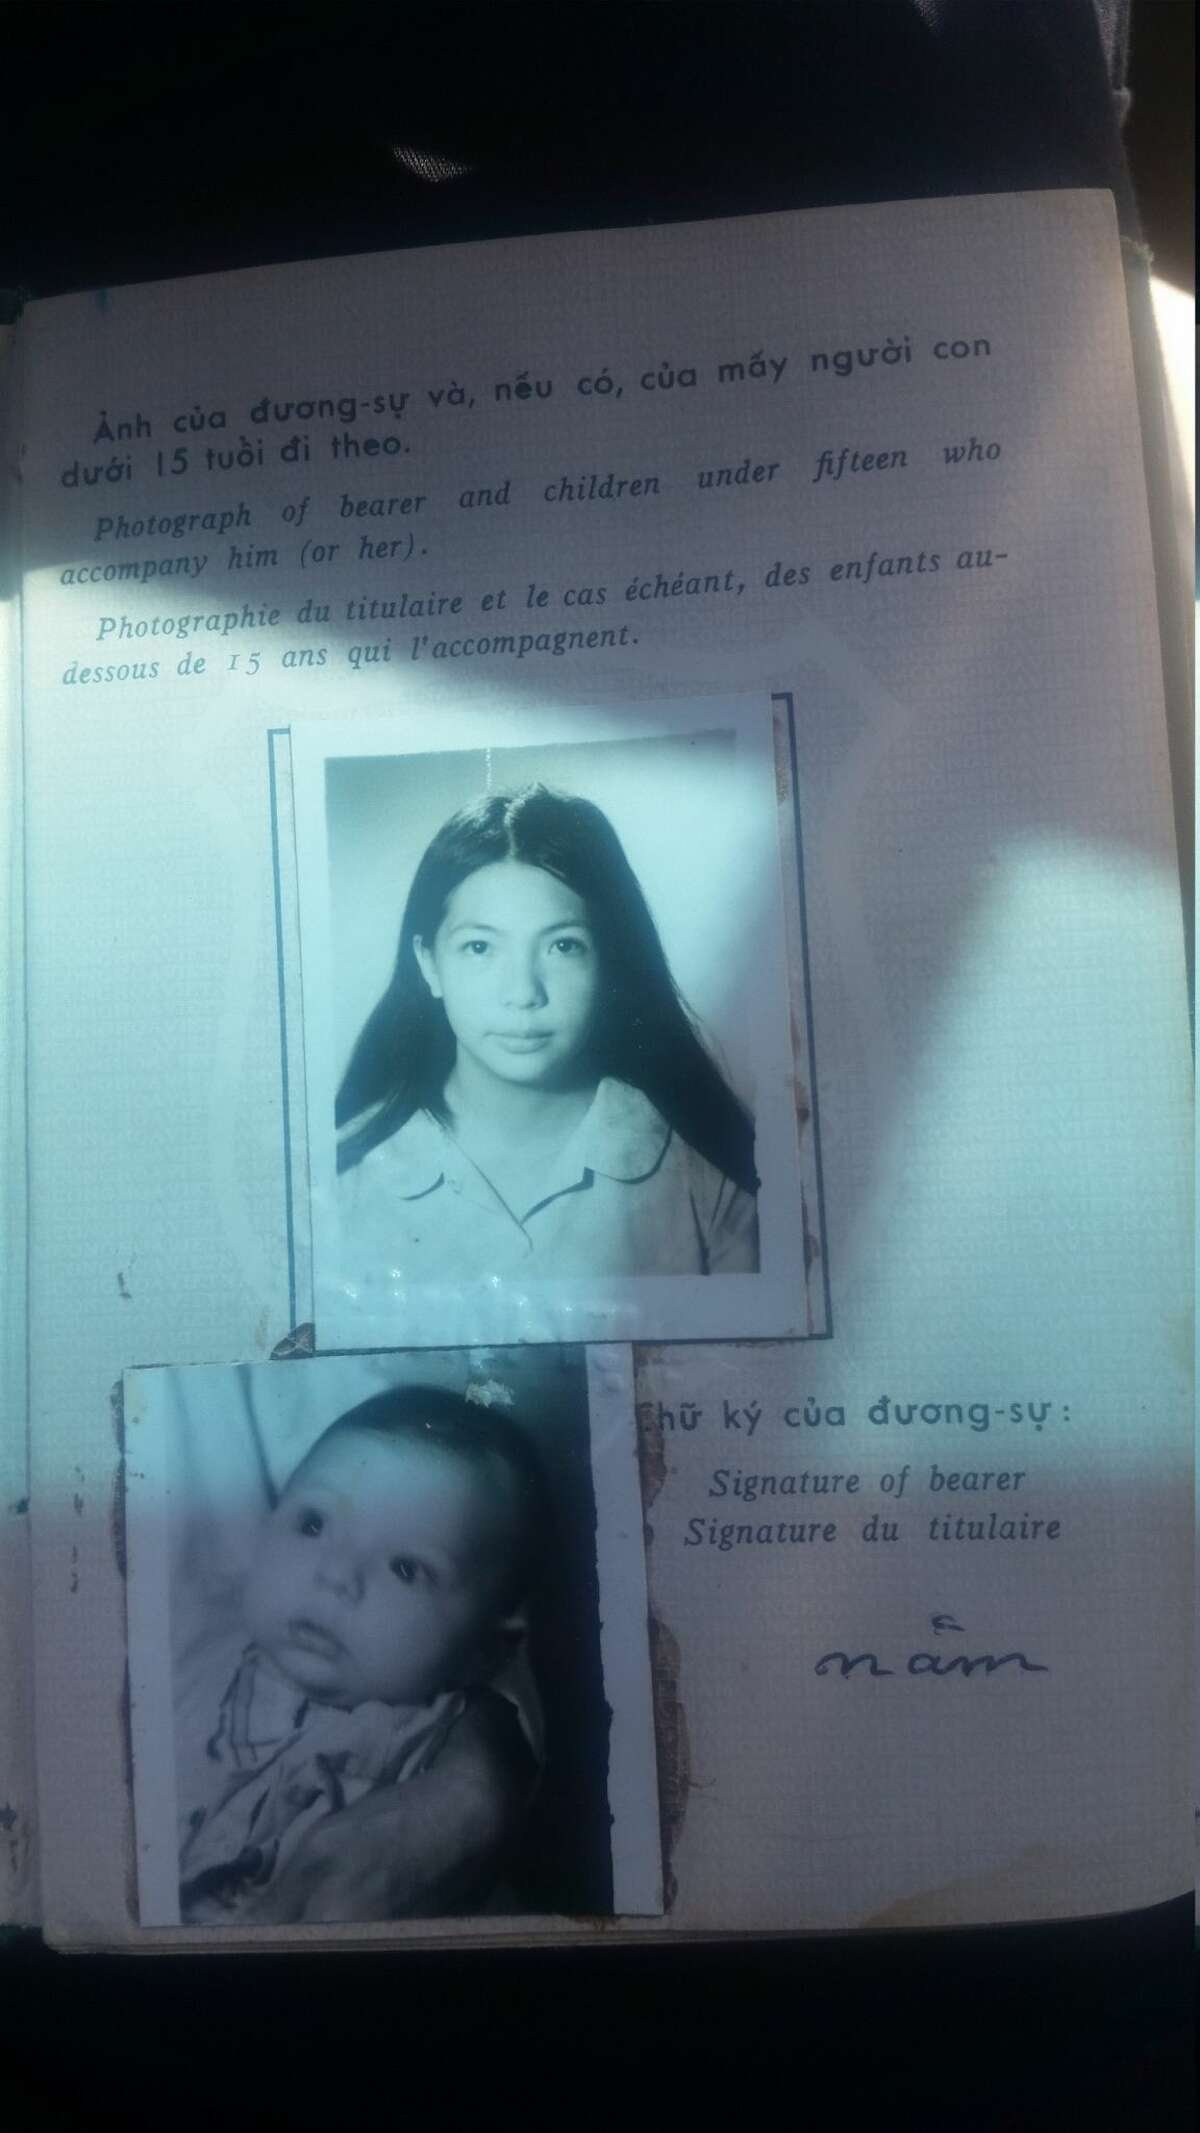 Visa photographs of Kim Remzi as a baby and her mother.